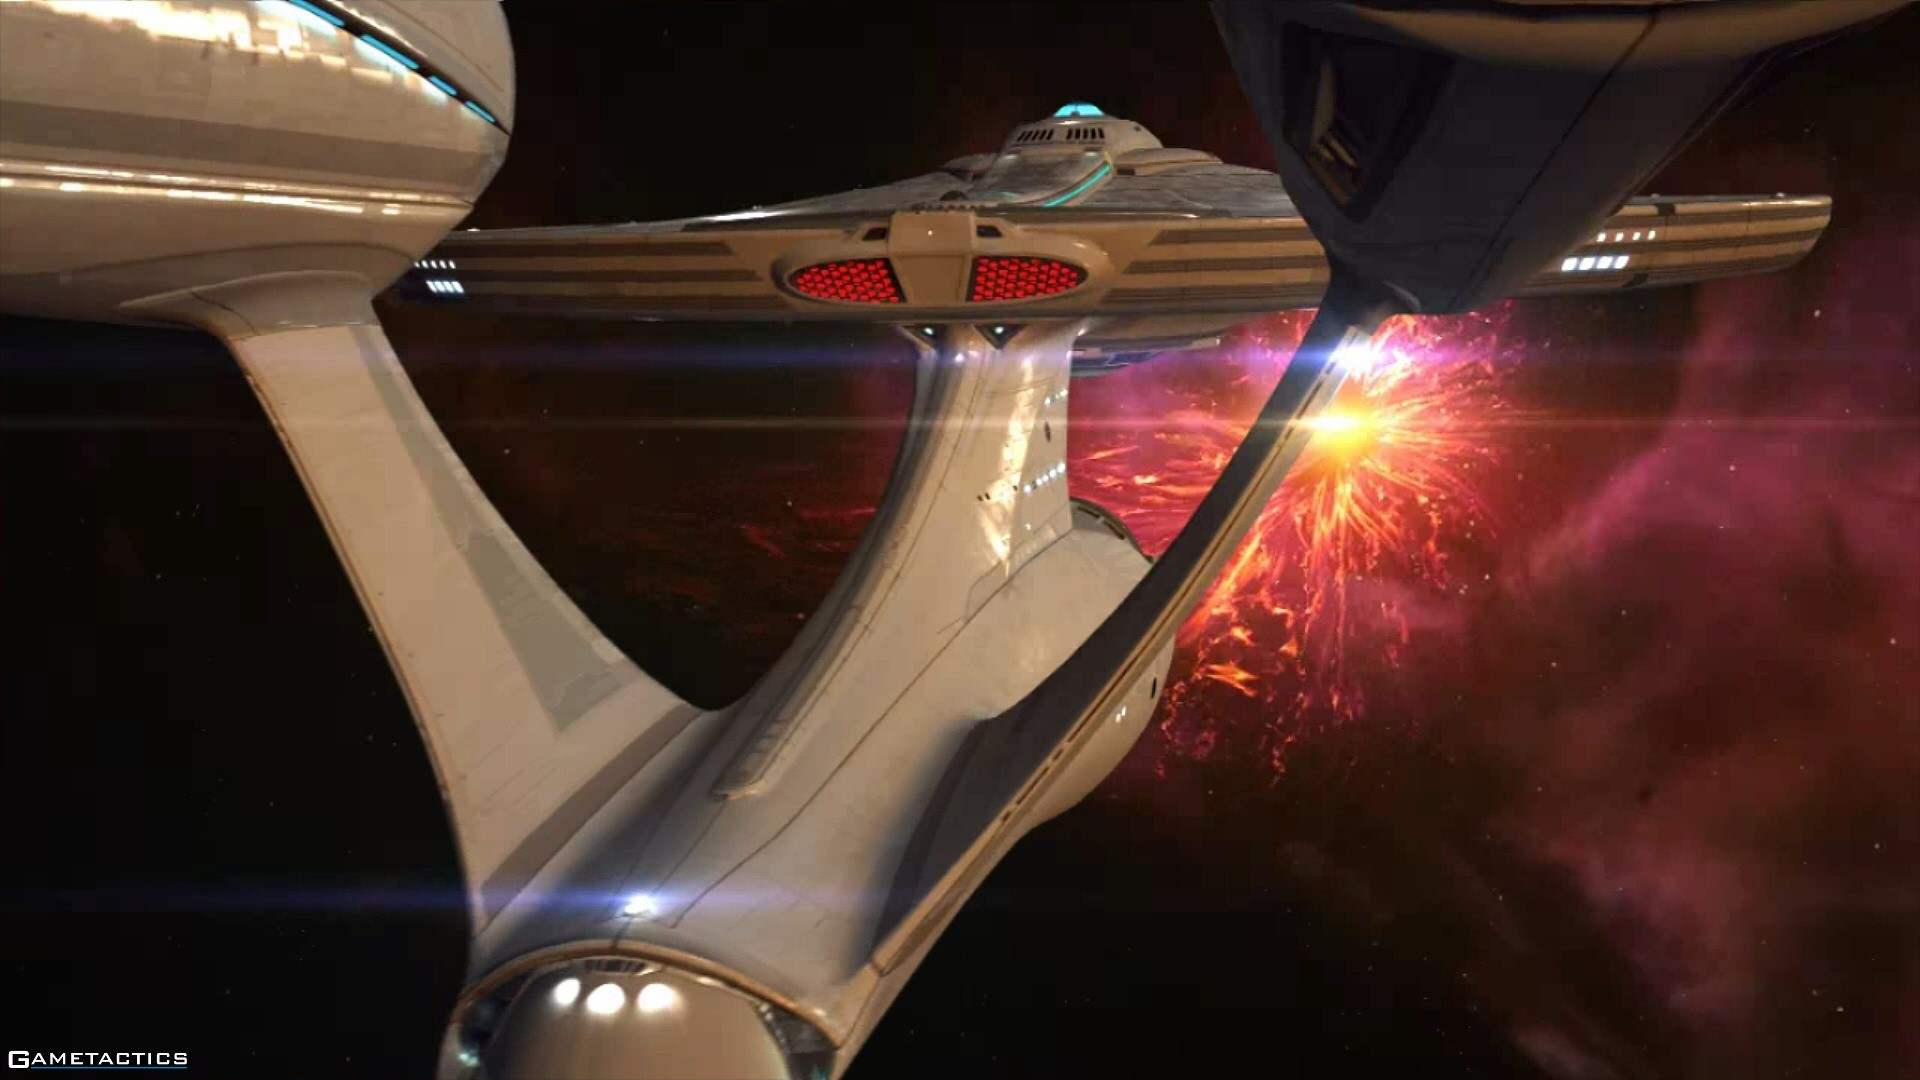 Star trek enterprise game